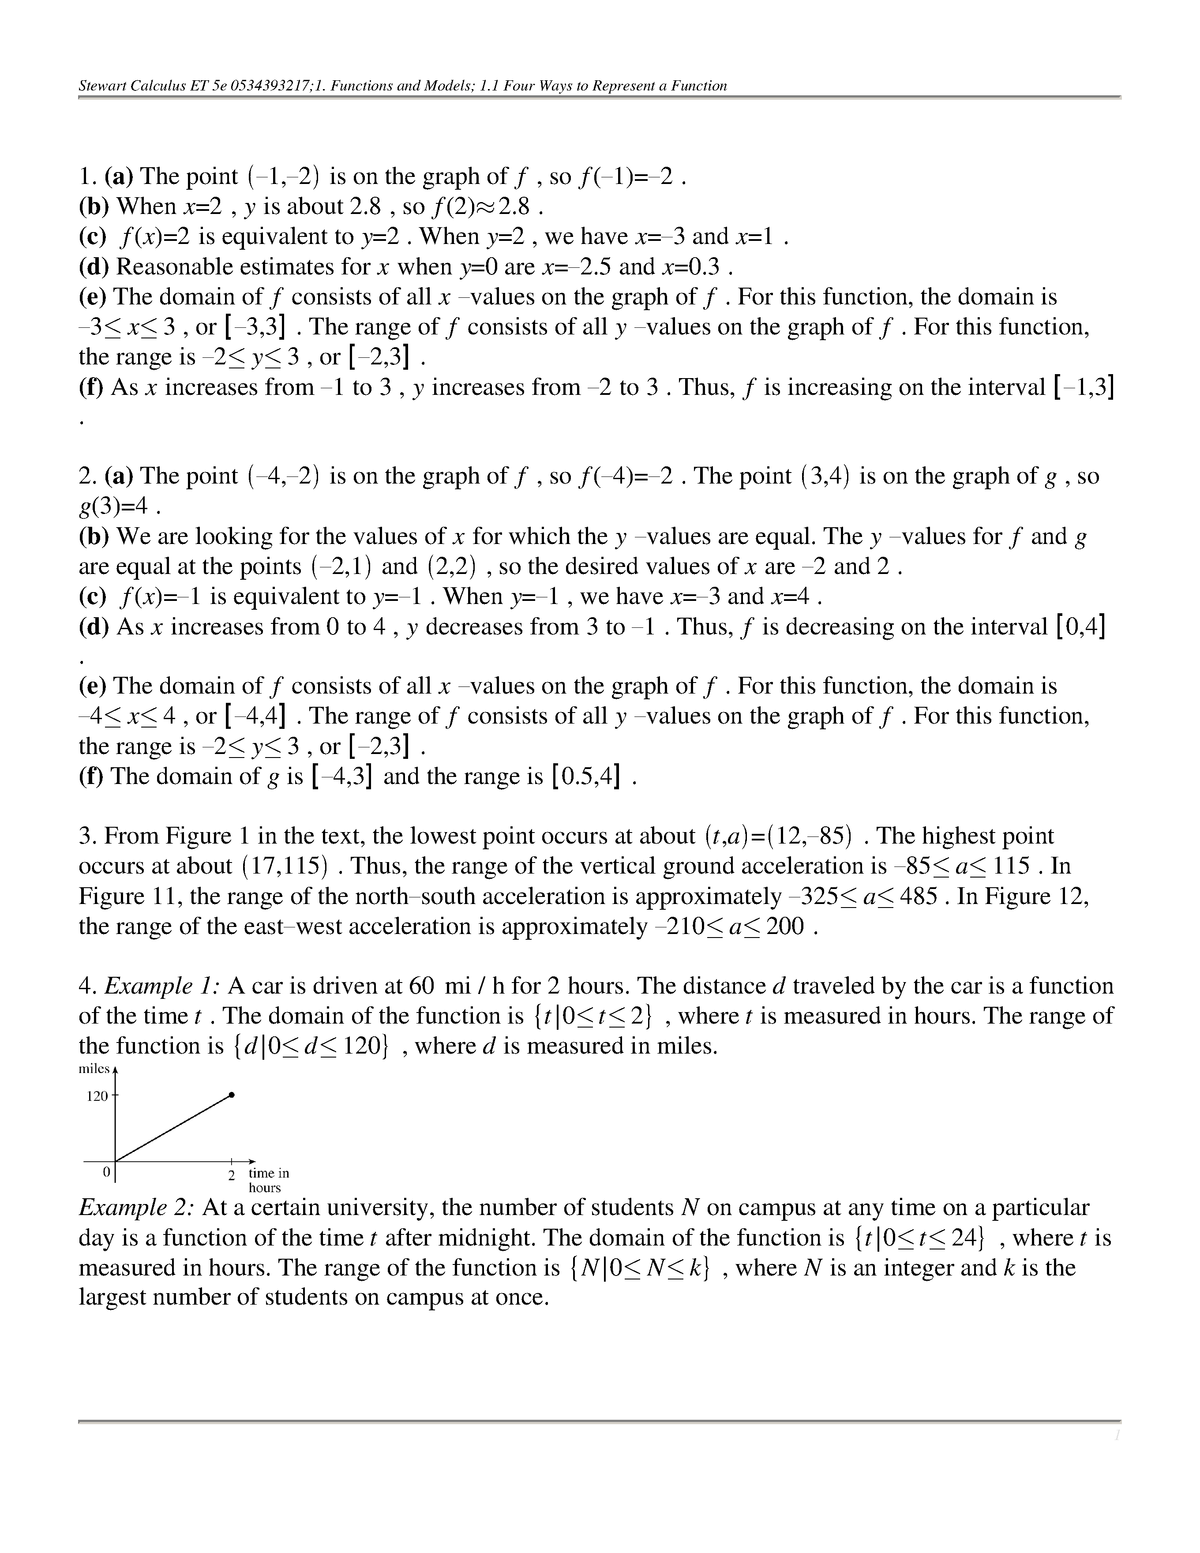 Calculus James Stewart 5th Edition Solutions - IS0155: Wiskunde